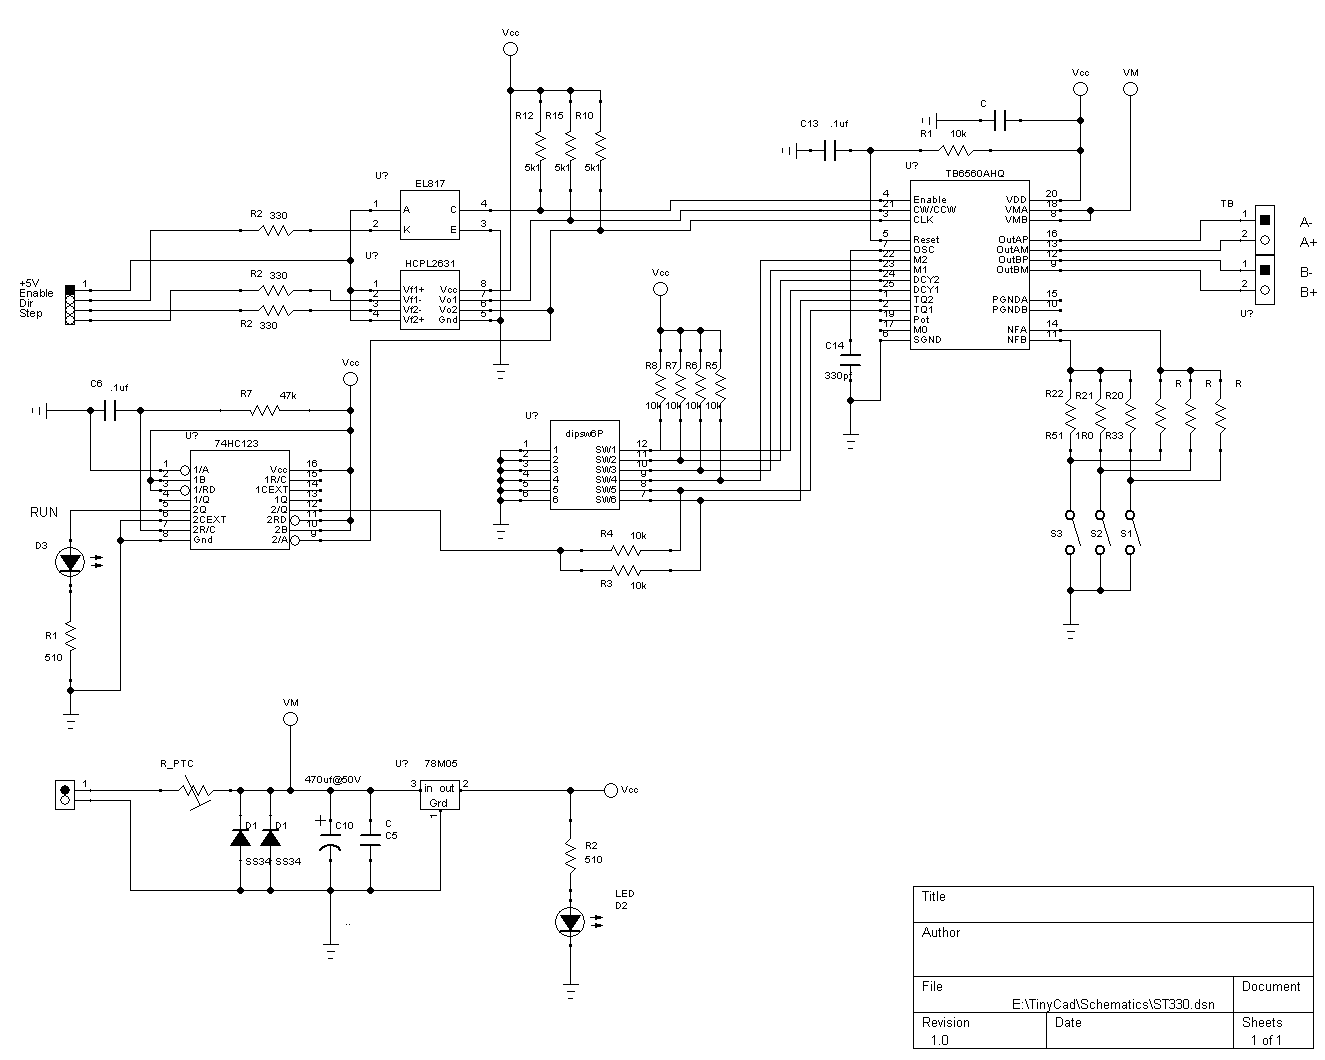 4 axis tb6560 schematic get free image about wiring diagram